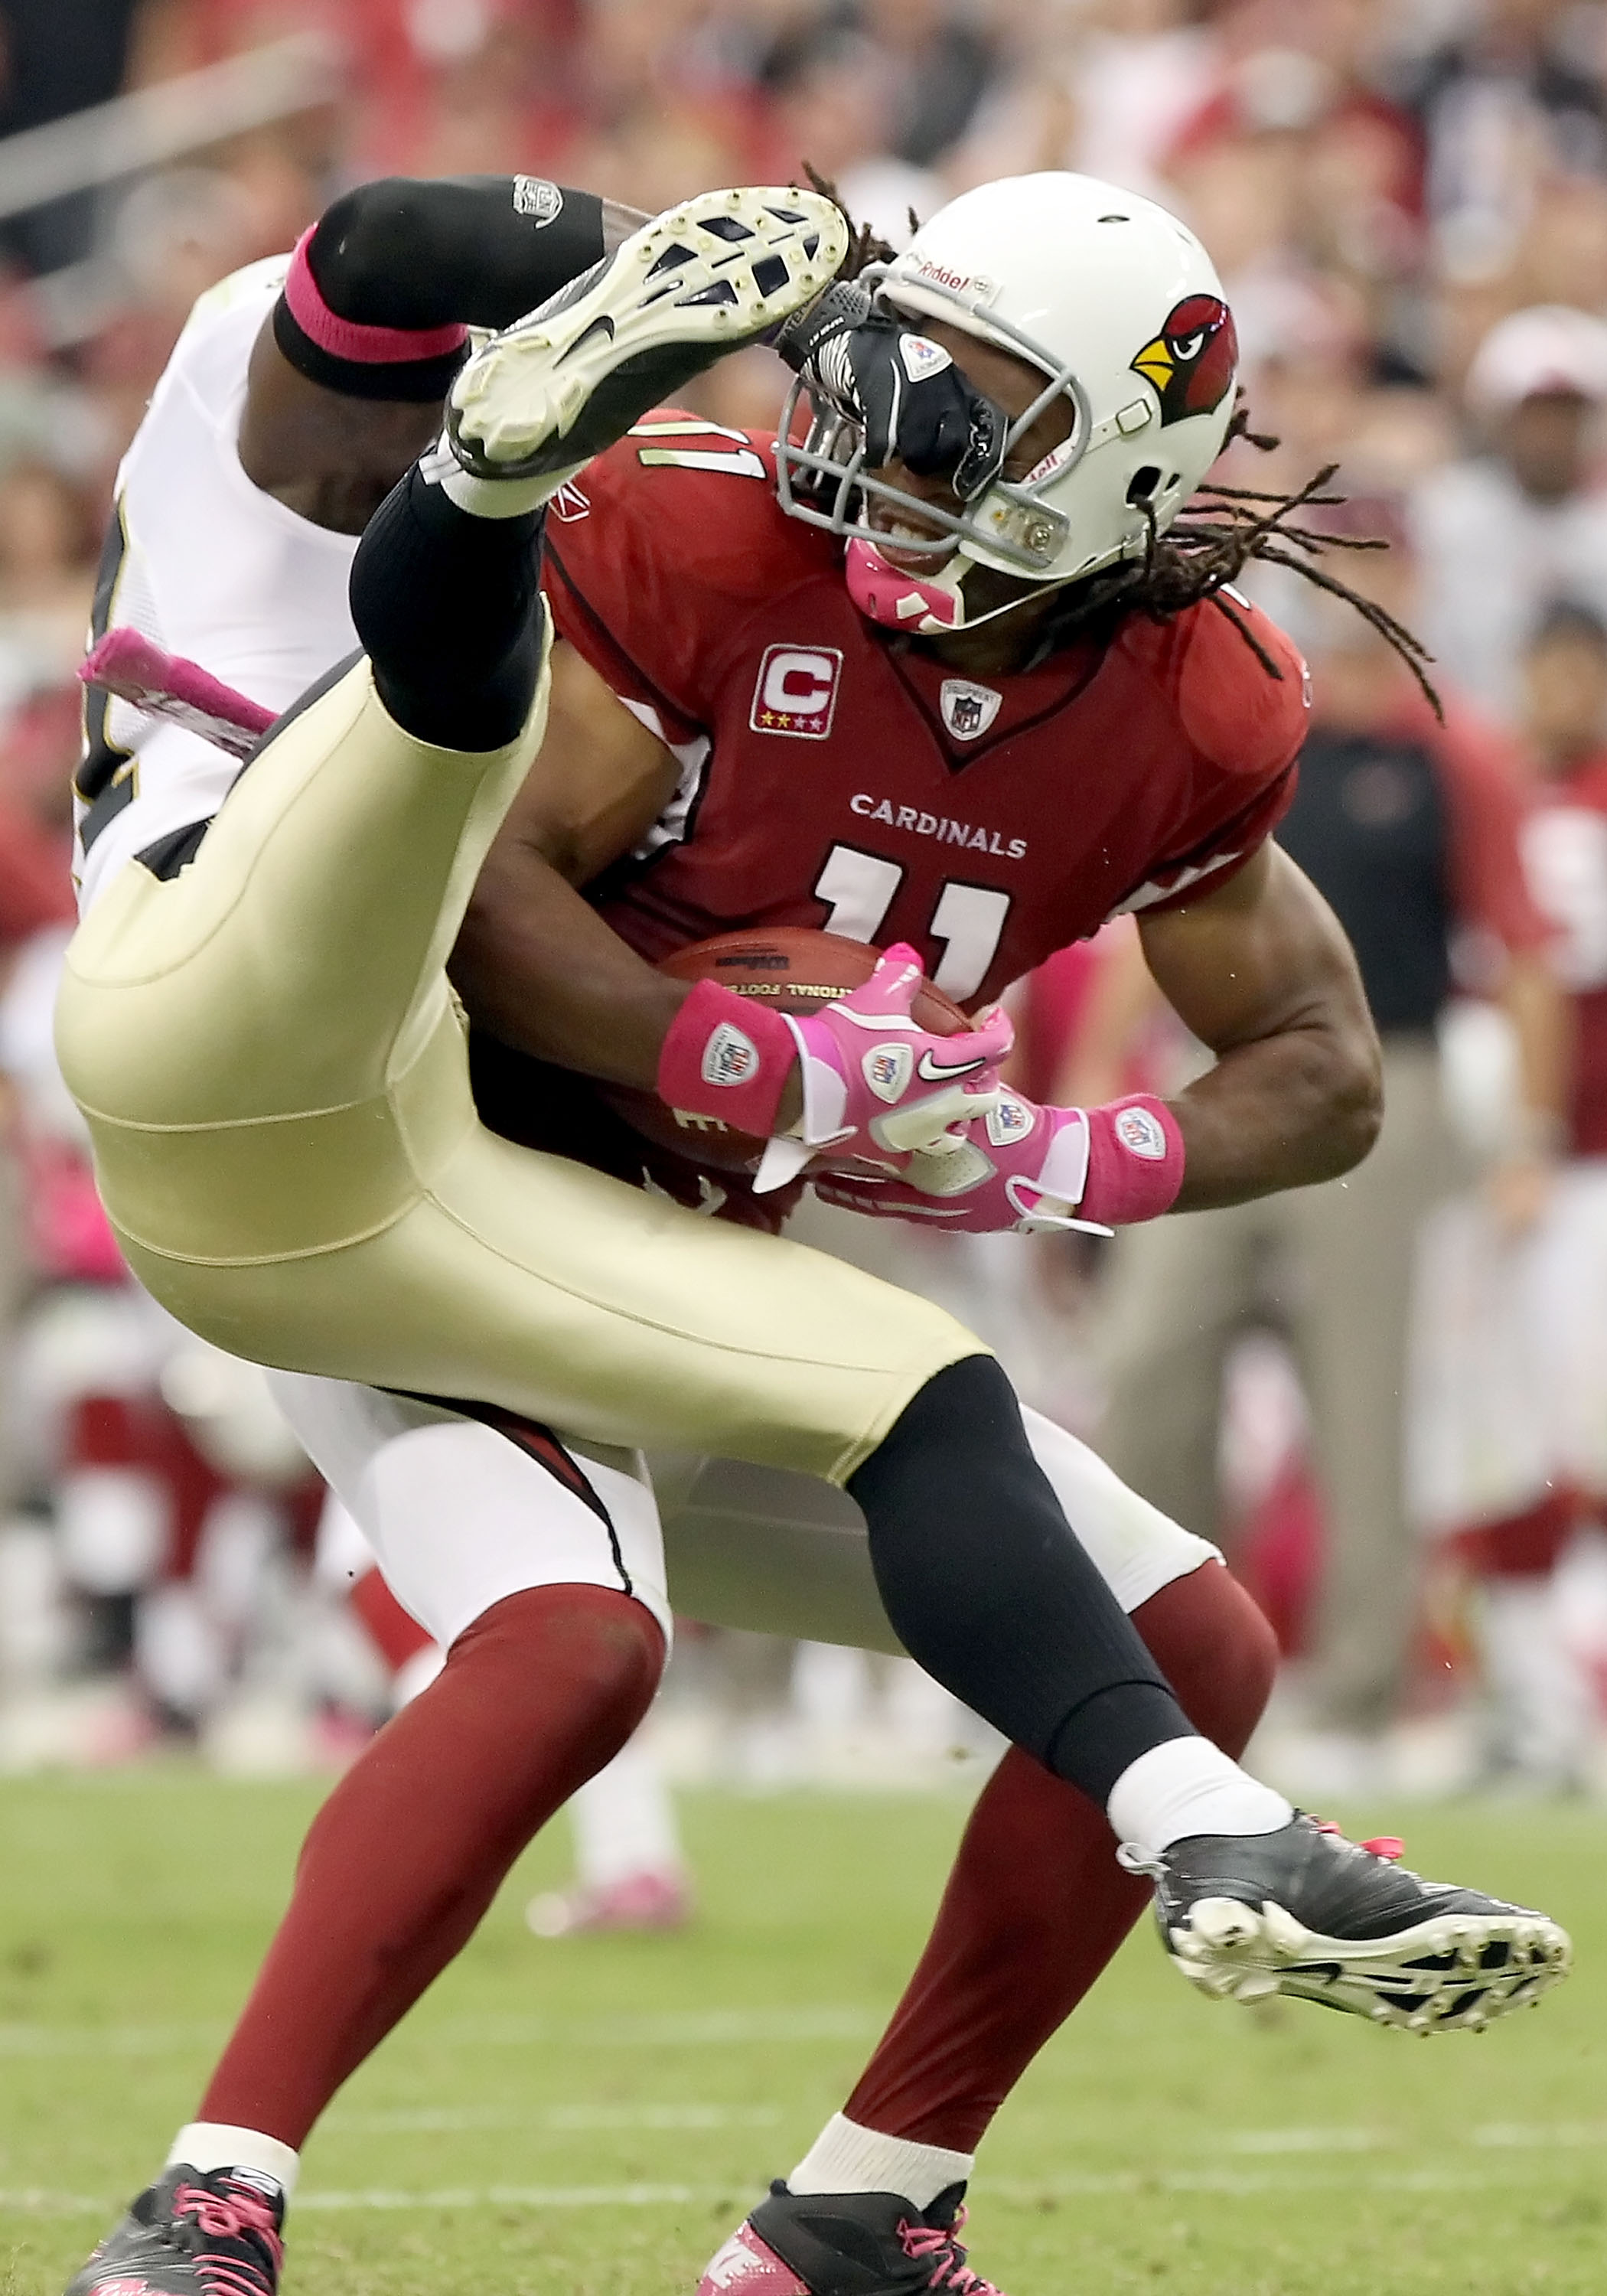 GLENDALE, AZ - OCTOBER 10:  Wide receiver Larry Fitzgerald #11 of the Arizona Cardinals gets facemasked by Malcolm Jenkins #27 of the New Orleans Saints after a 17 yard reception during the fourth quarter of the NFL game at the University of Phoenix Stadi